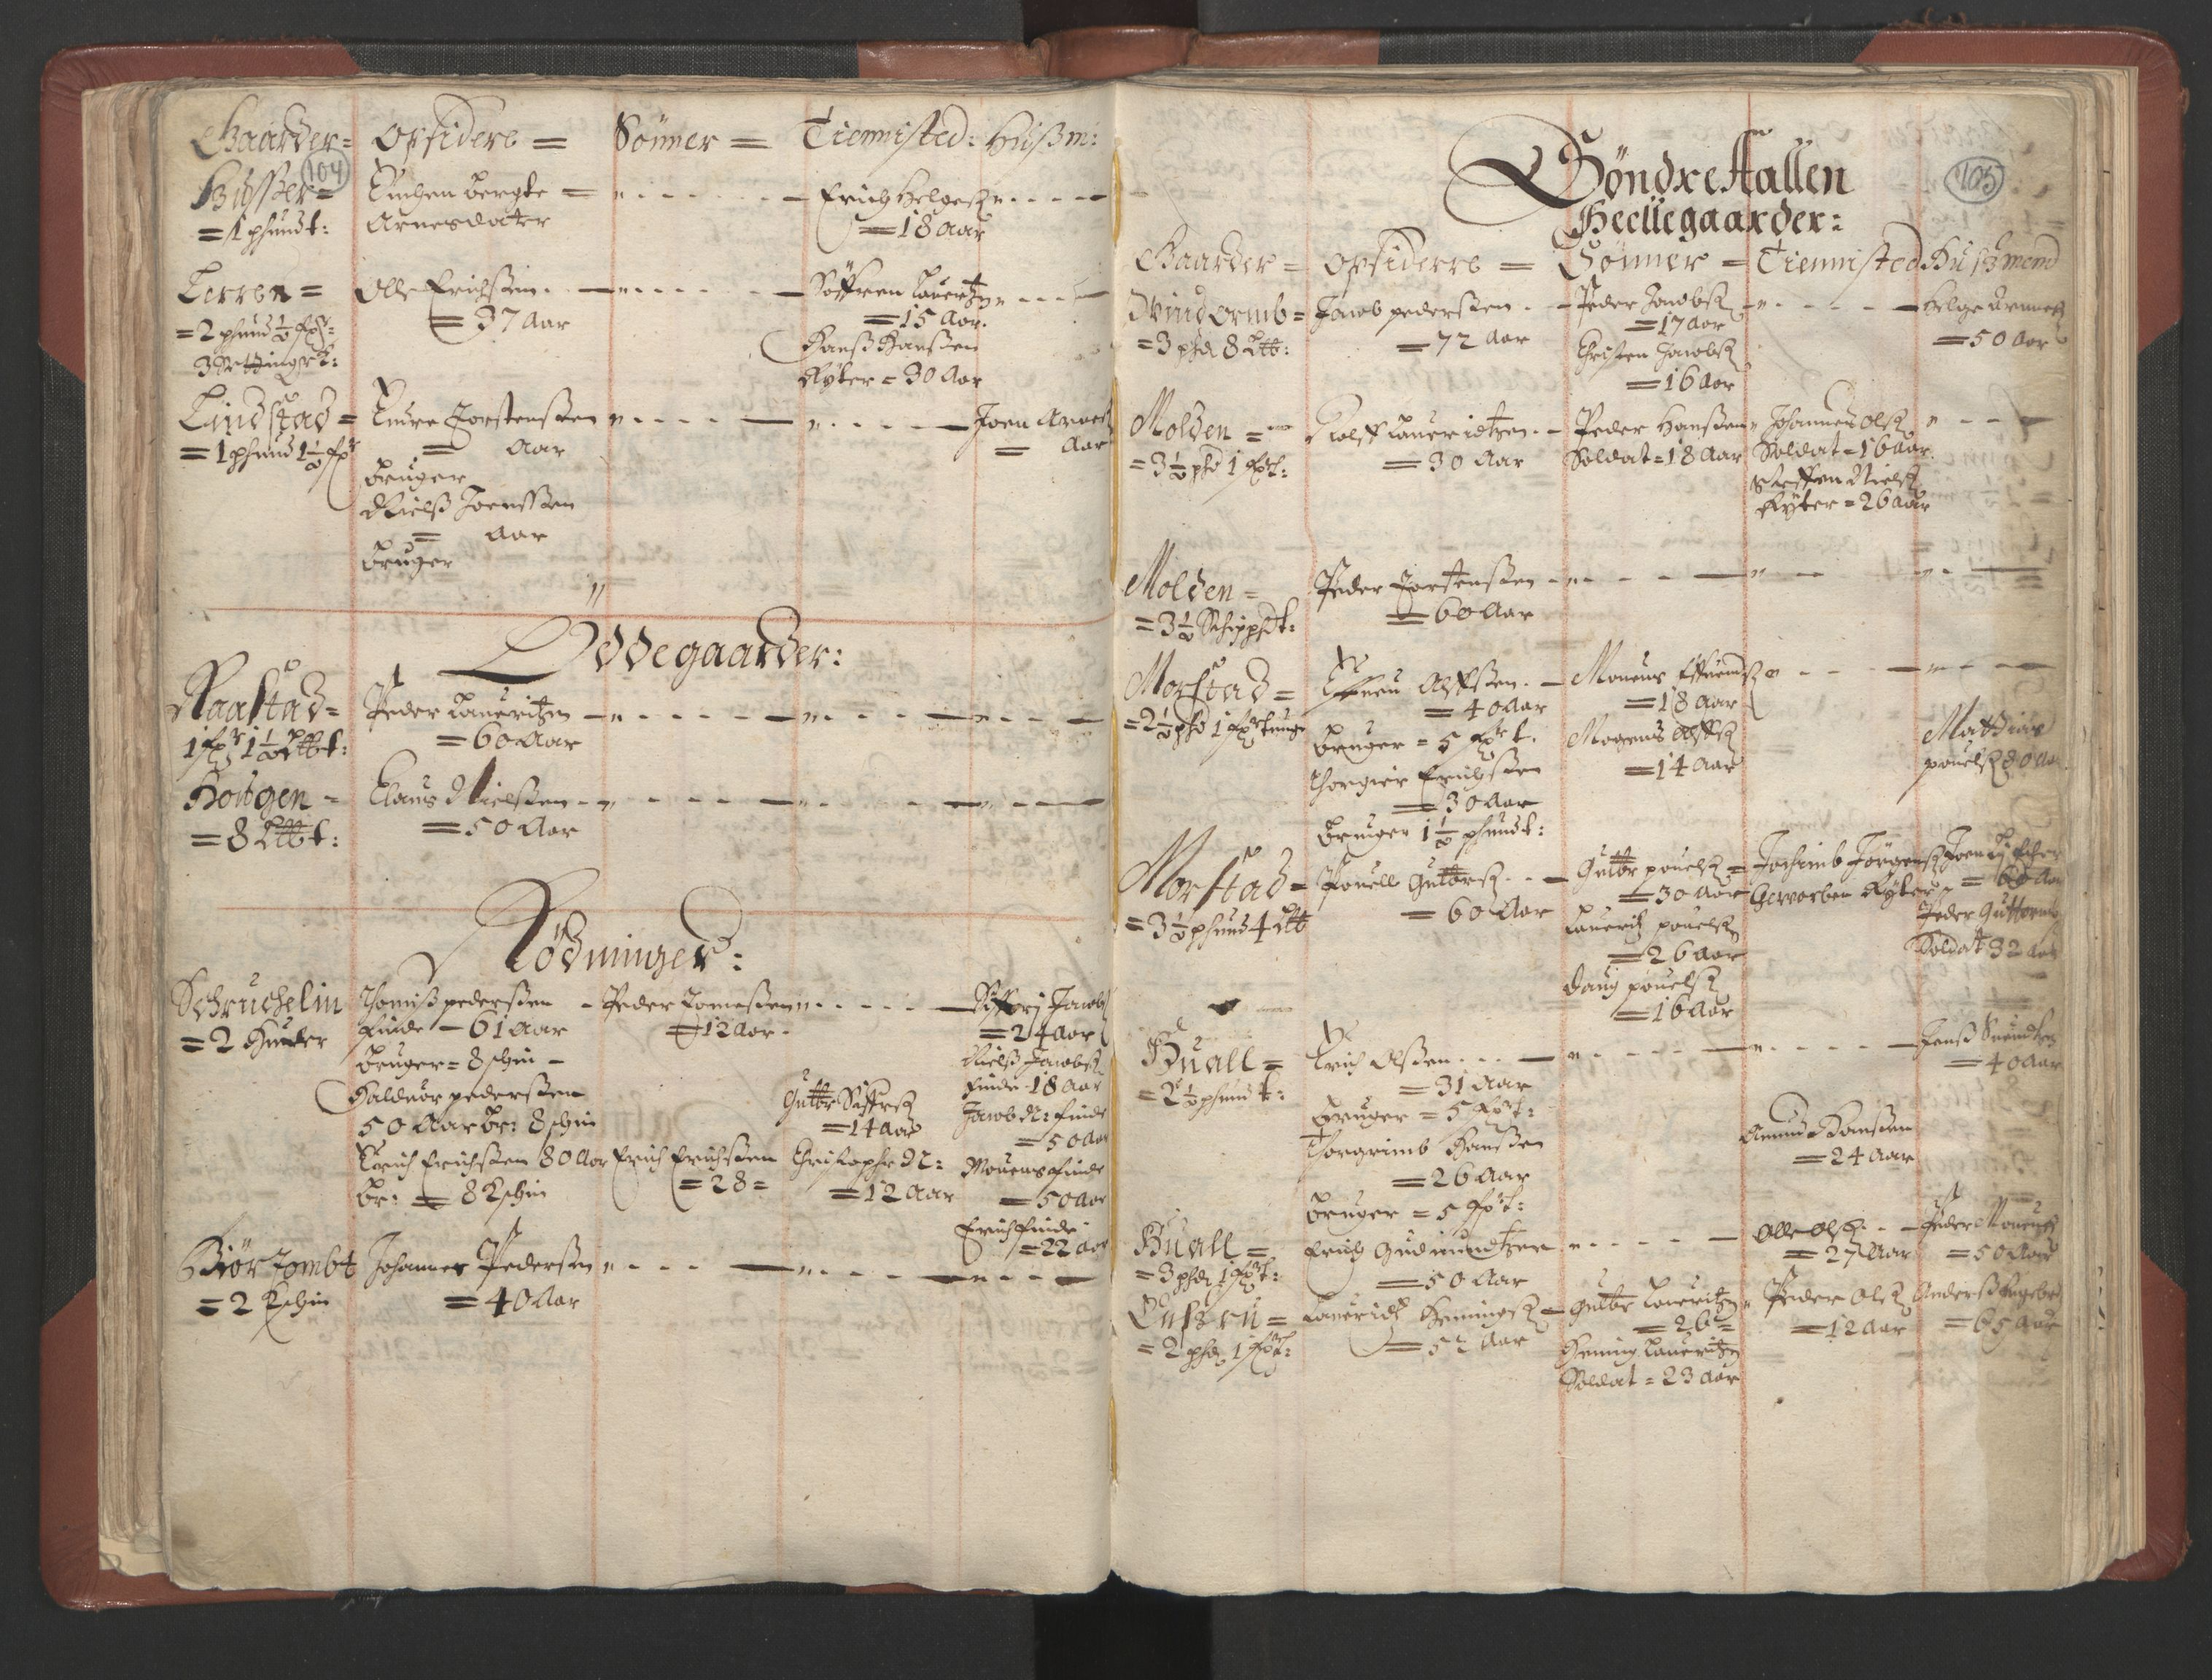 RA, Bailiff's Census 1664-1666, no. 4: Hadeland and Valdres fogderi and Gudbrandsdal fogderi, 1664, p. 104-105